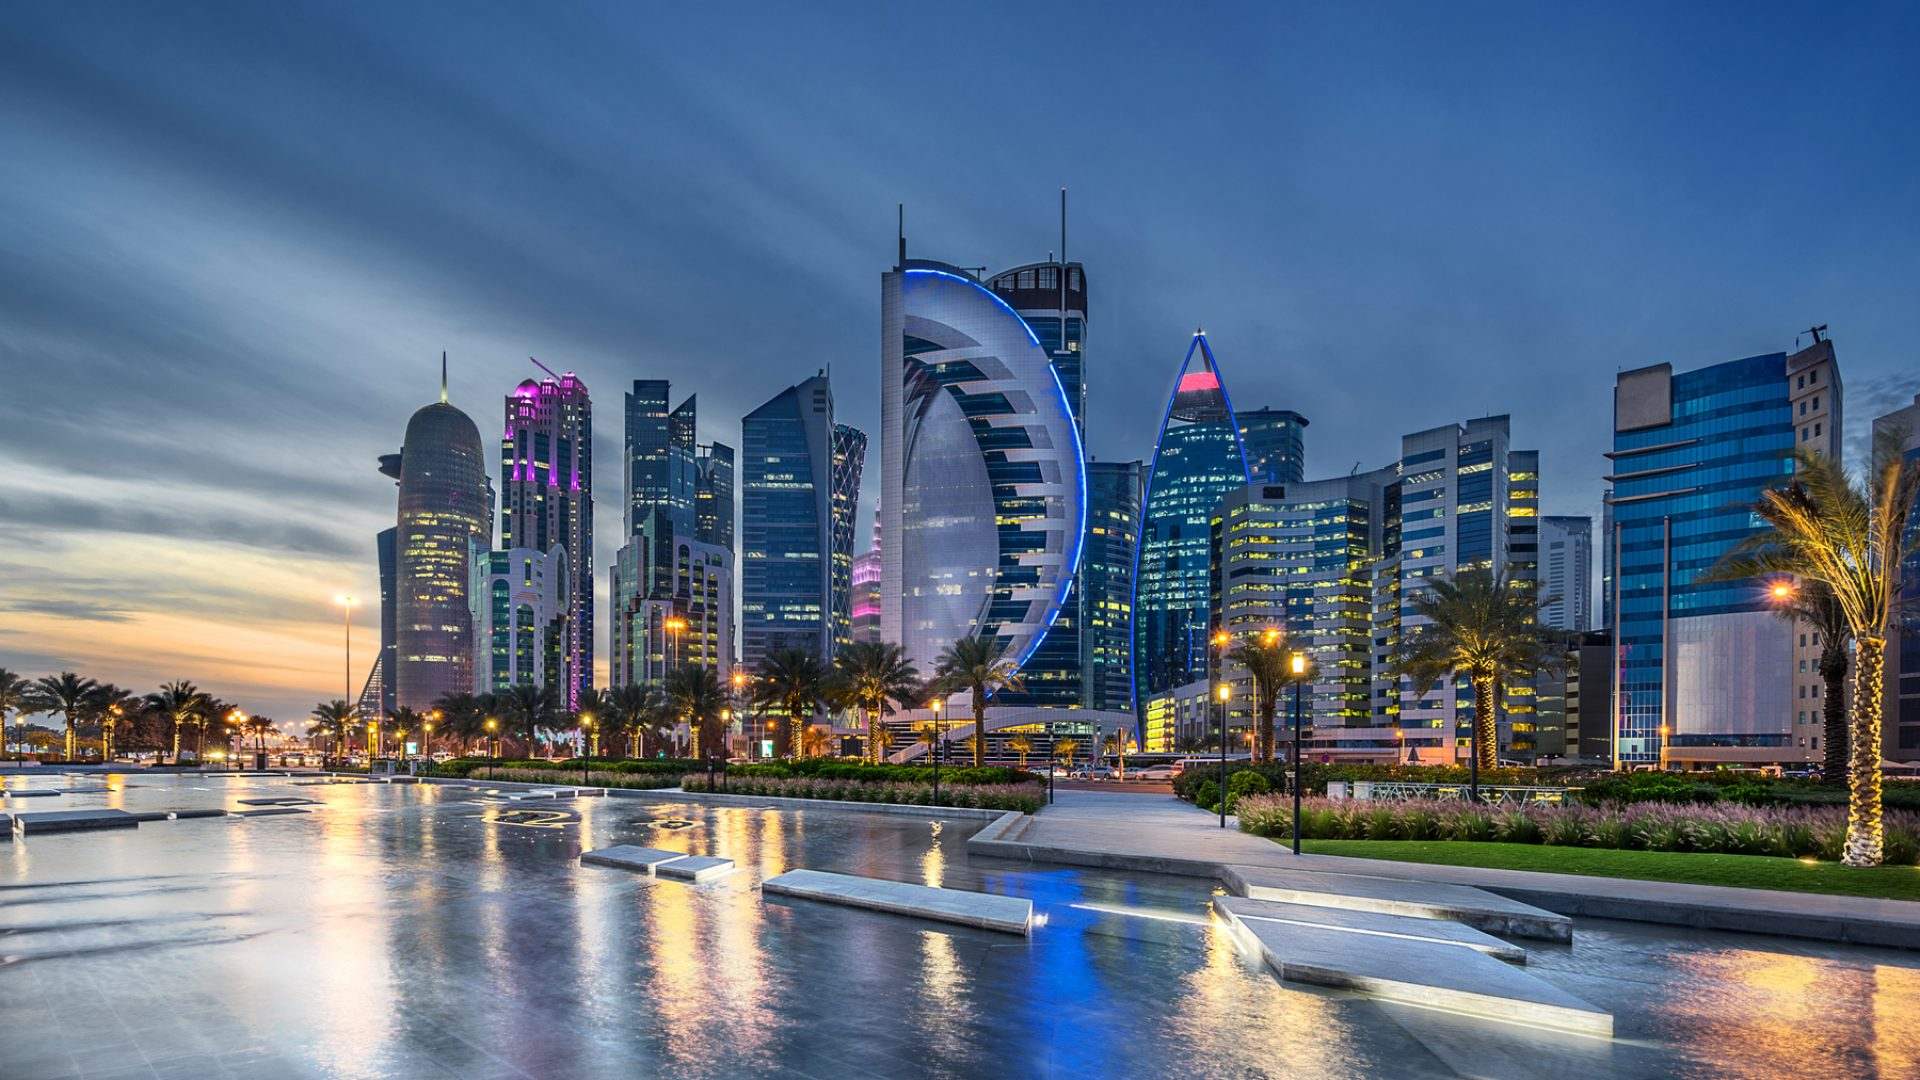 Qatar National Tourism Council announces that as Qatar prepares to re-open its borders, Doha has been named as the second safest city in the world in Numbeo's Crime Index by City 2021.